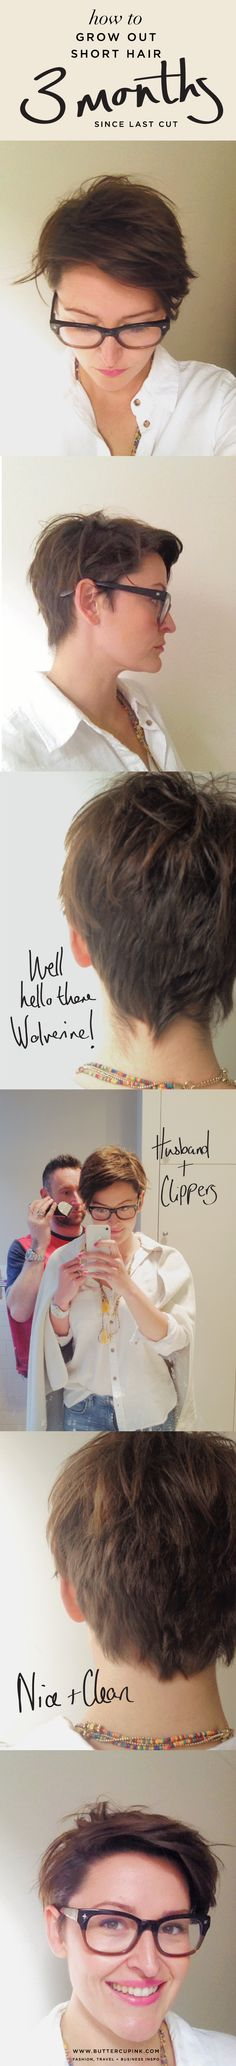 How to grow out short hair | 3 month stage. My hair journal of growing out an undercut. #pixiecut #shorthair #fauxhawk